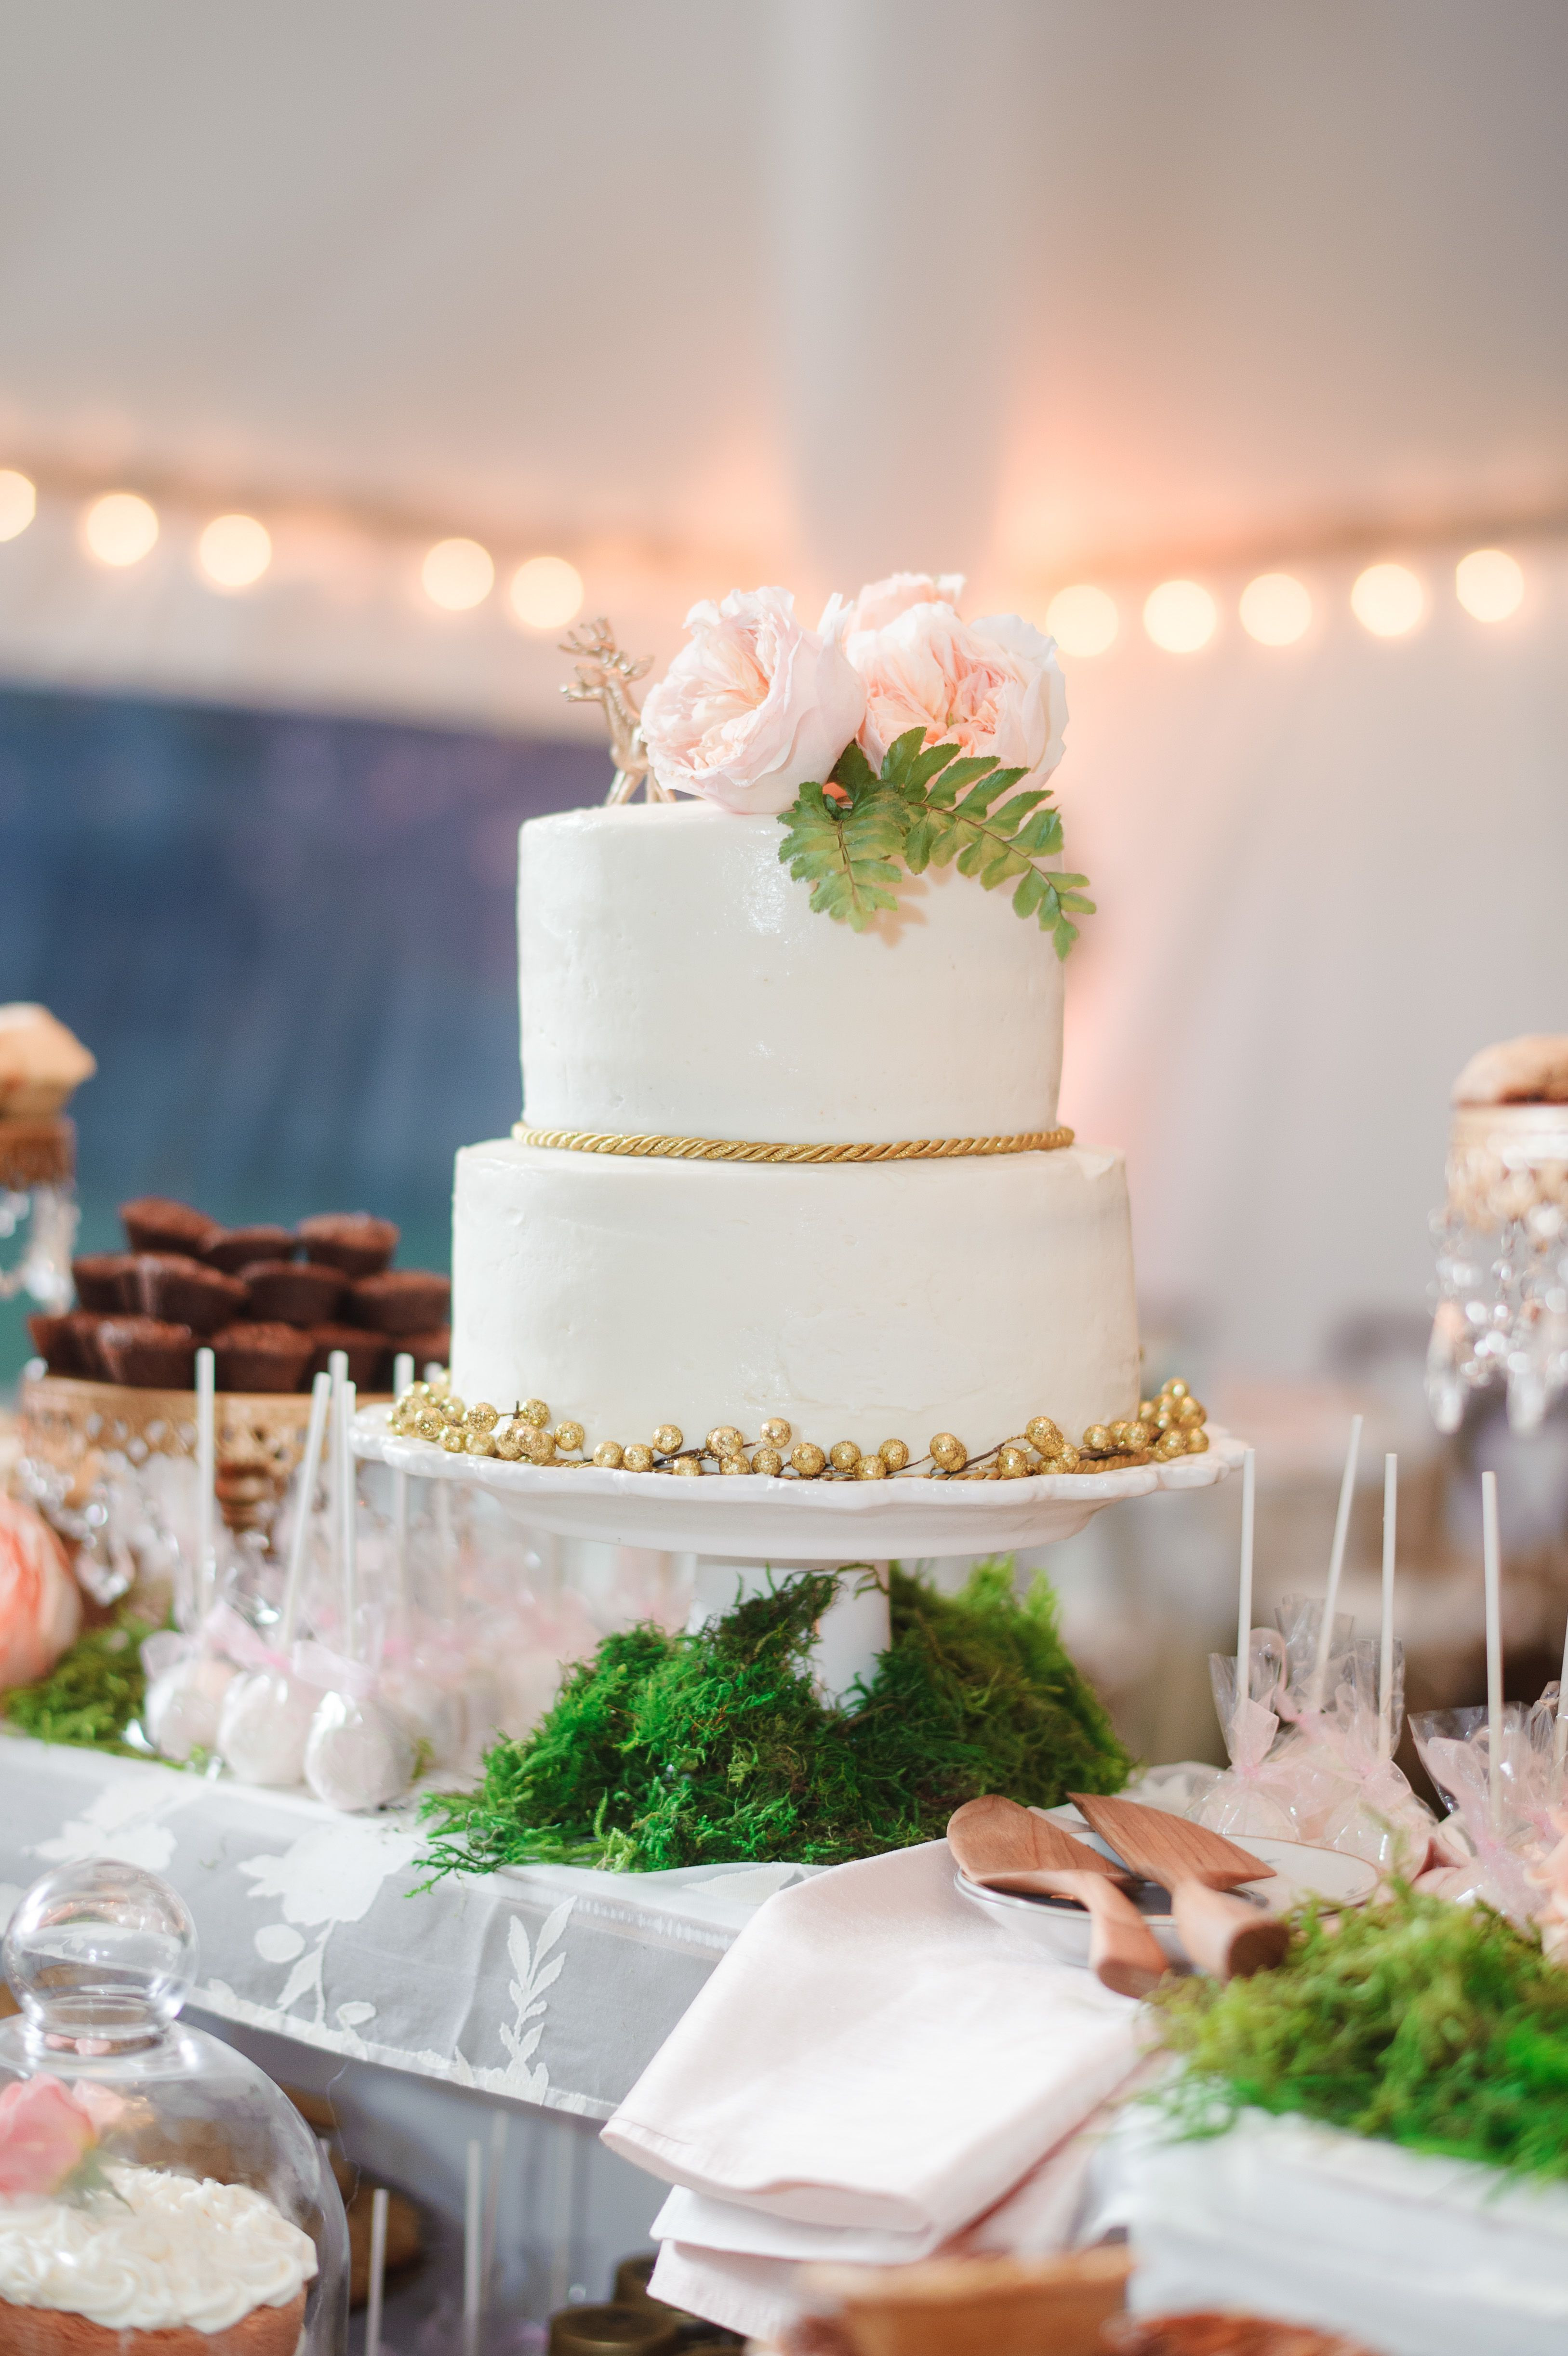 Wedding Cakes With Gold Accents  Tiered White Wedding Cake with Gold Accents